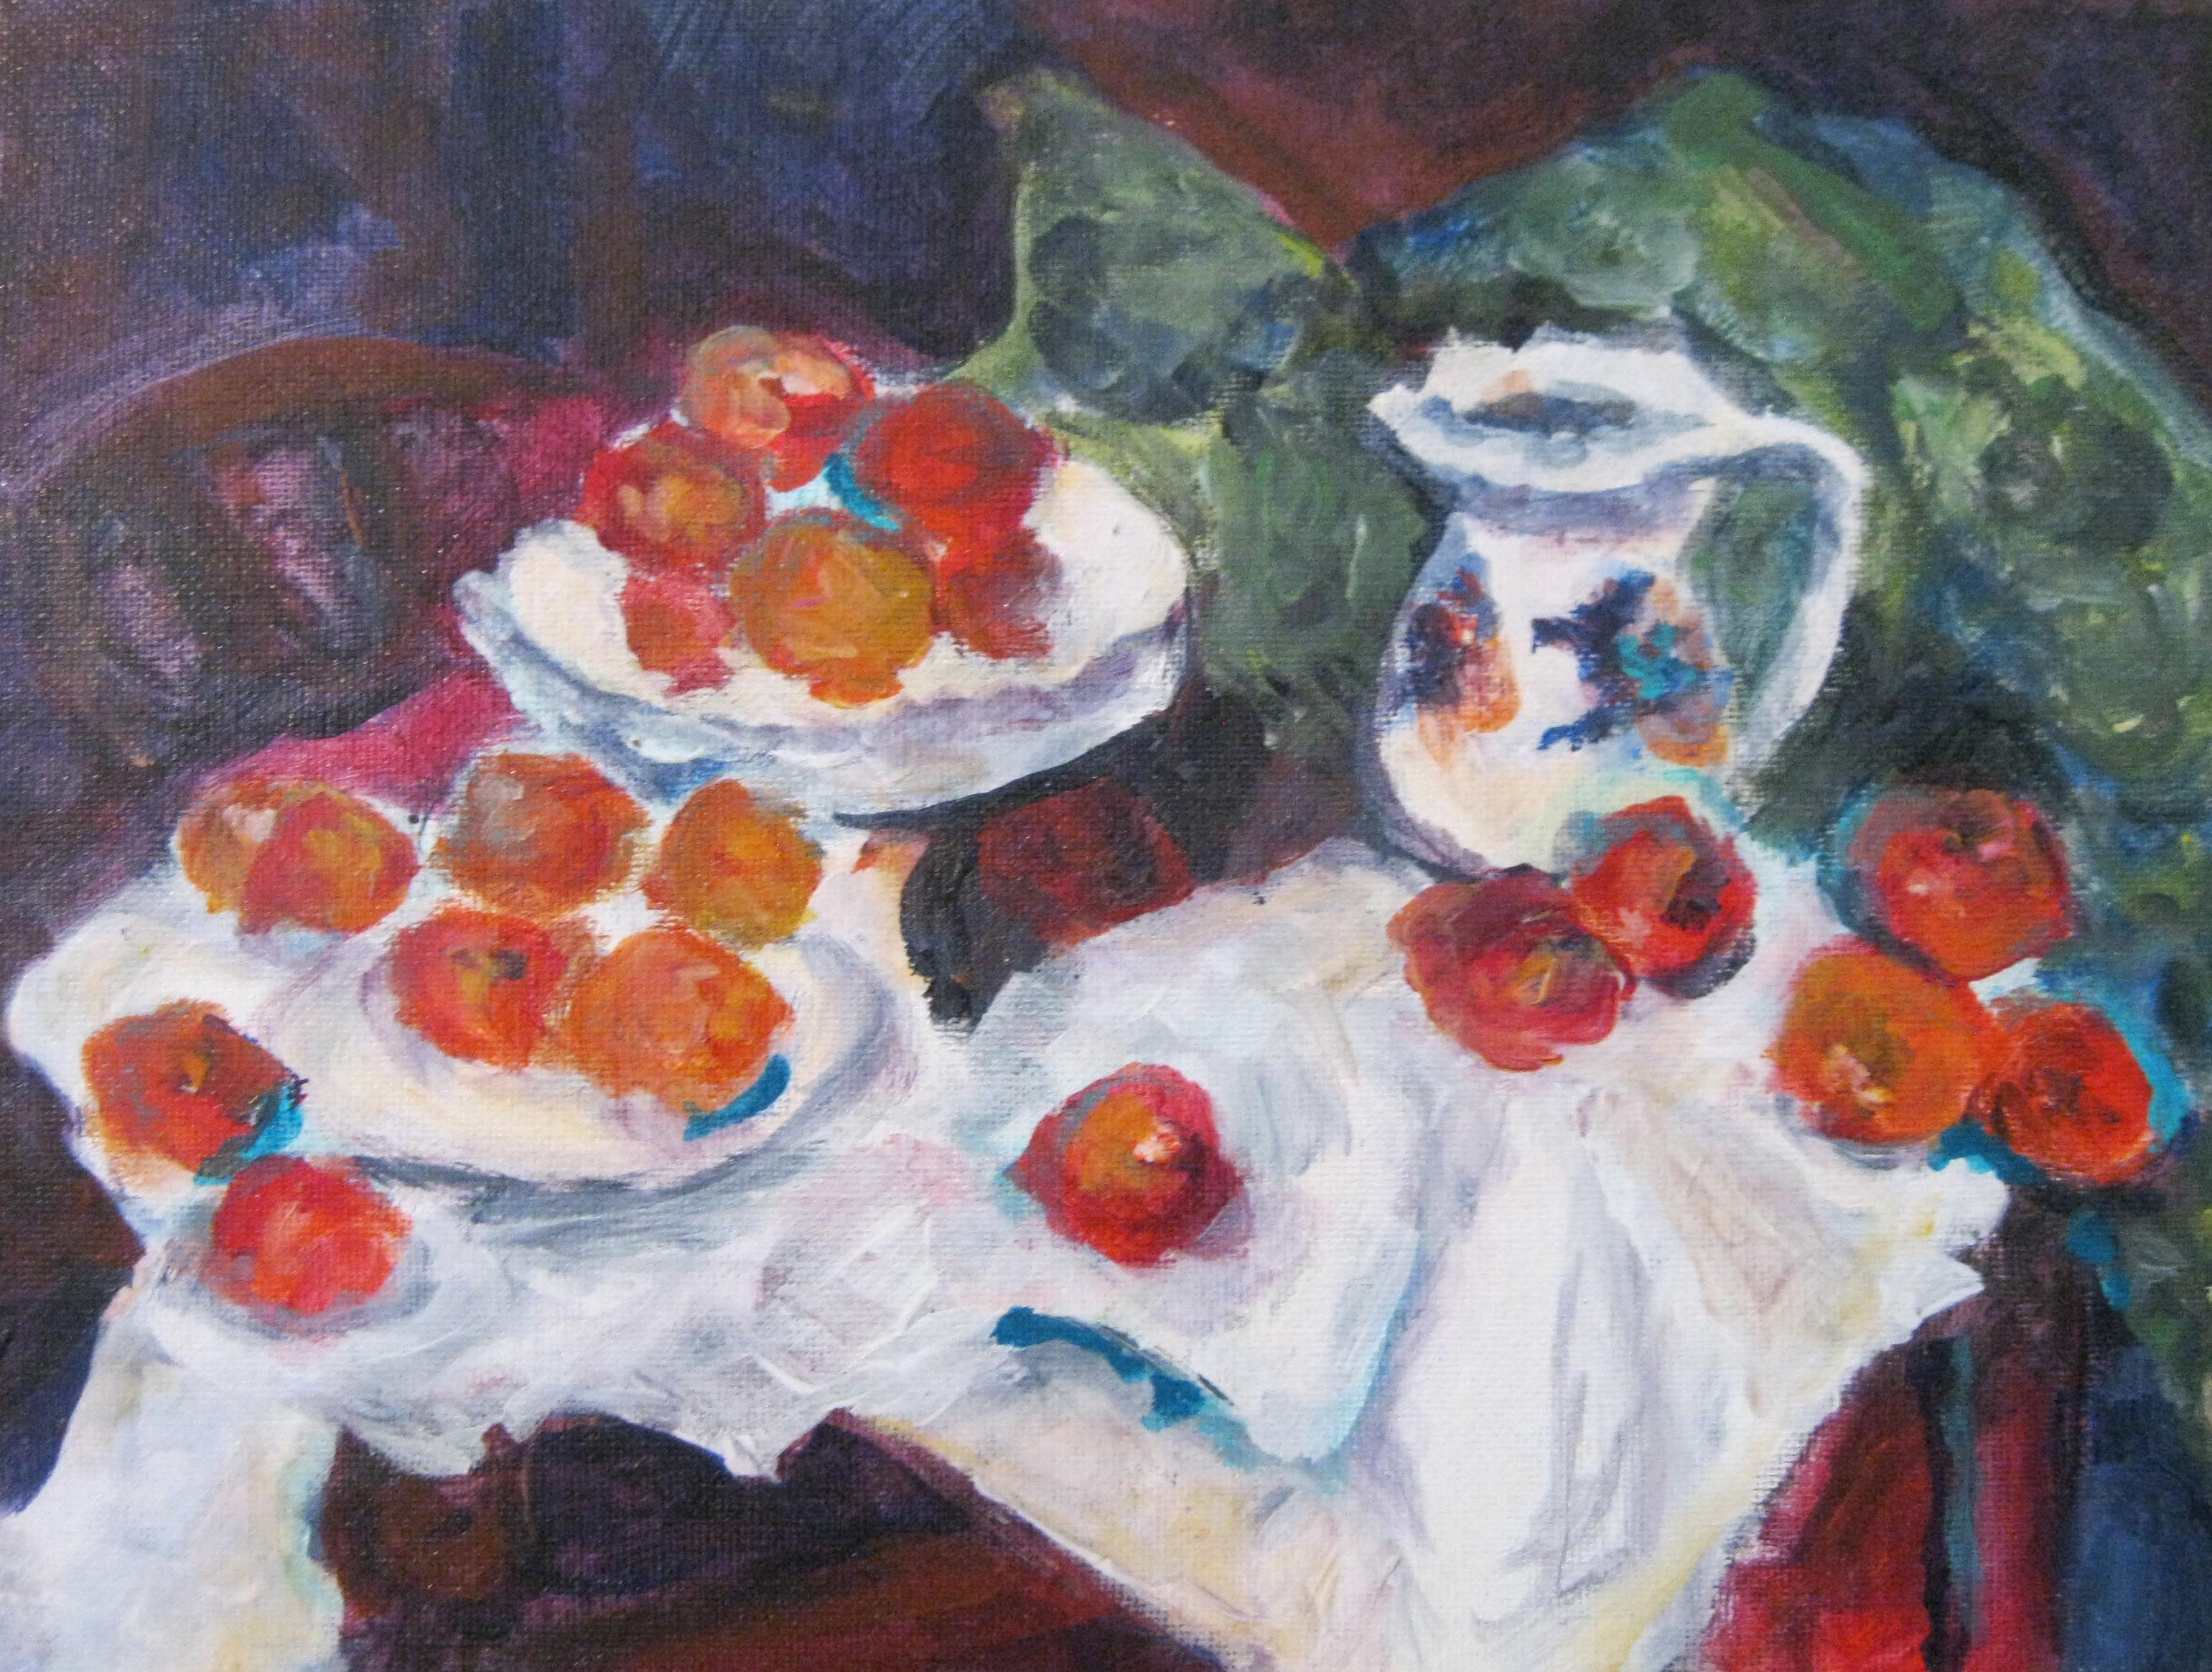 Apples after Cezanne